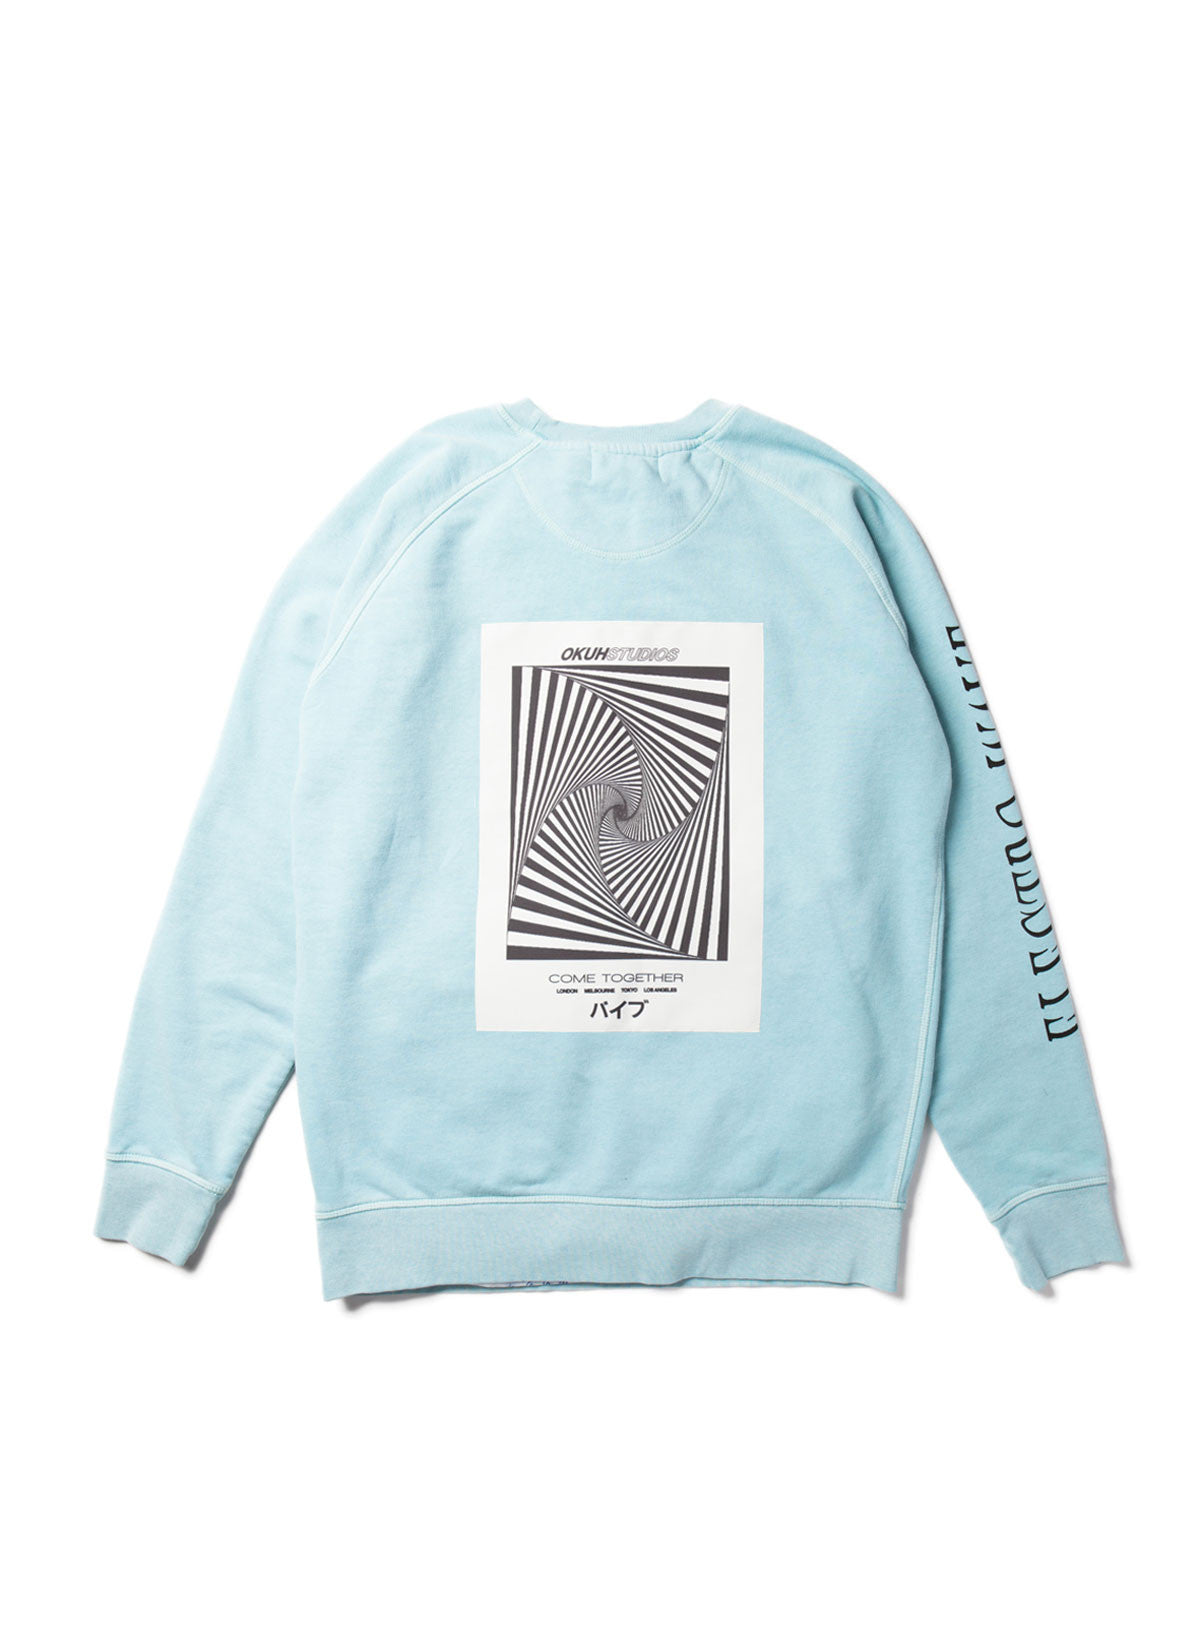 Electrowave Blue Sweatshirt by Okuh Studios, mens streetwear fashion brand, Back